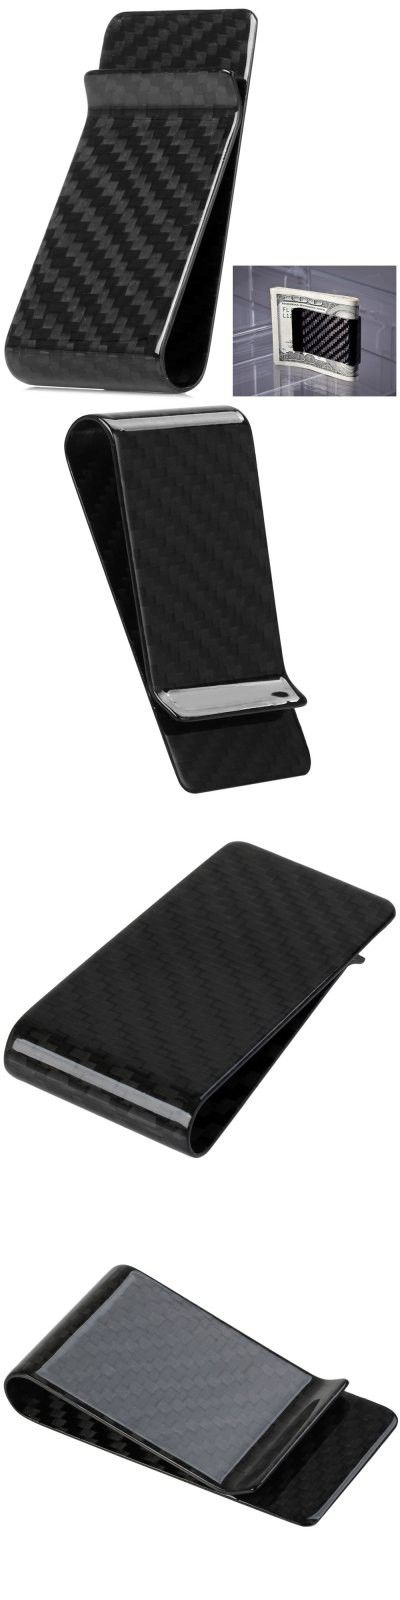 Premium Carbon Fiber Cash Money Clip with Glossy Finish - FREE SHIPPING - Price: $8.82 - Buy Now: https://ariani-shop.com/s/155268